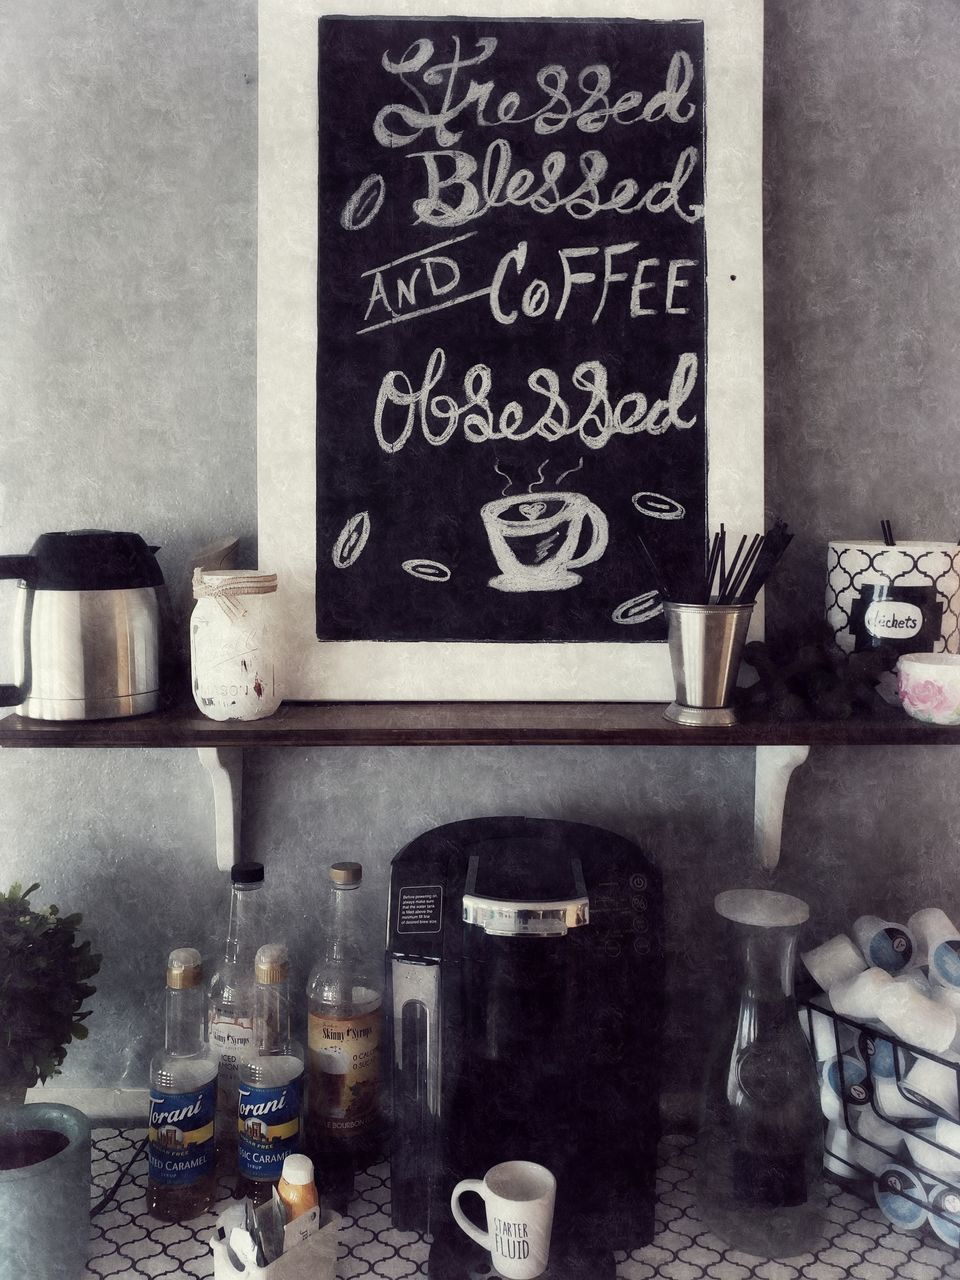 blackboard, board, indoors, shelf, no people, text, domestic room, container, home, communication, western script, bottle, wall - building feature, home interior, table, large group of objects, architecture, day, kitchen, still life, menu, message